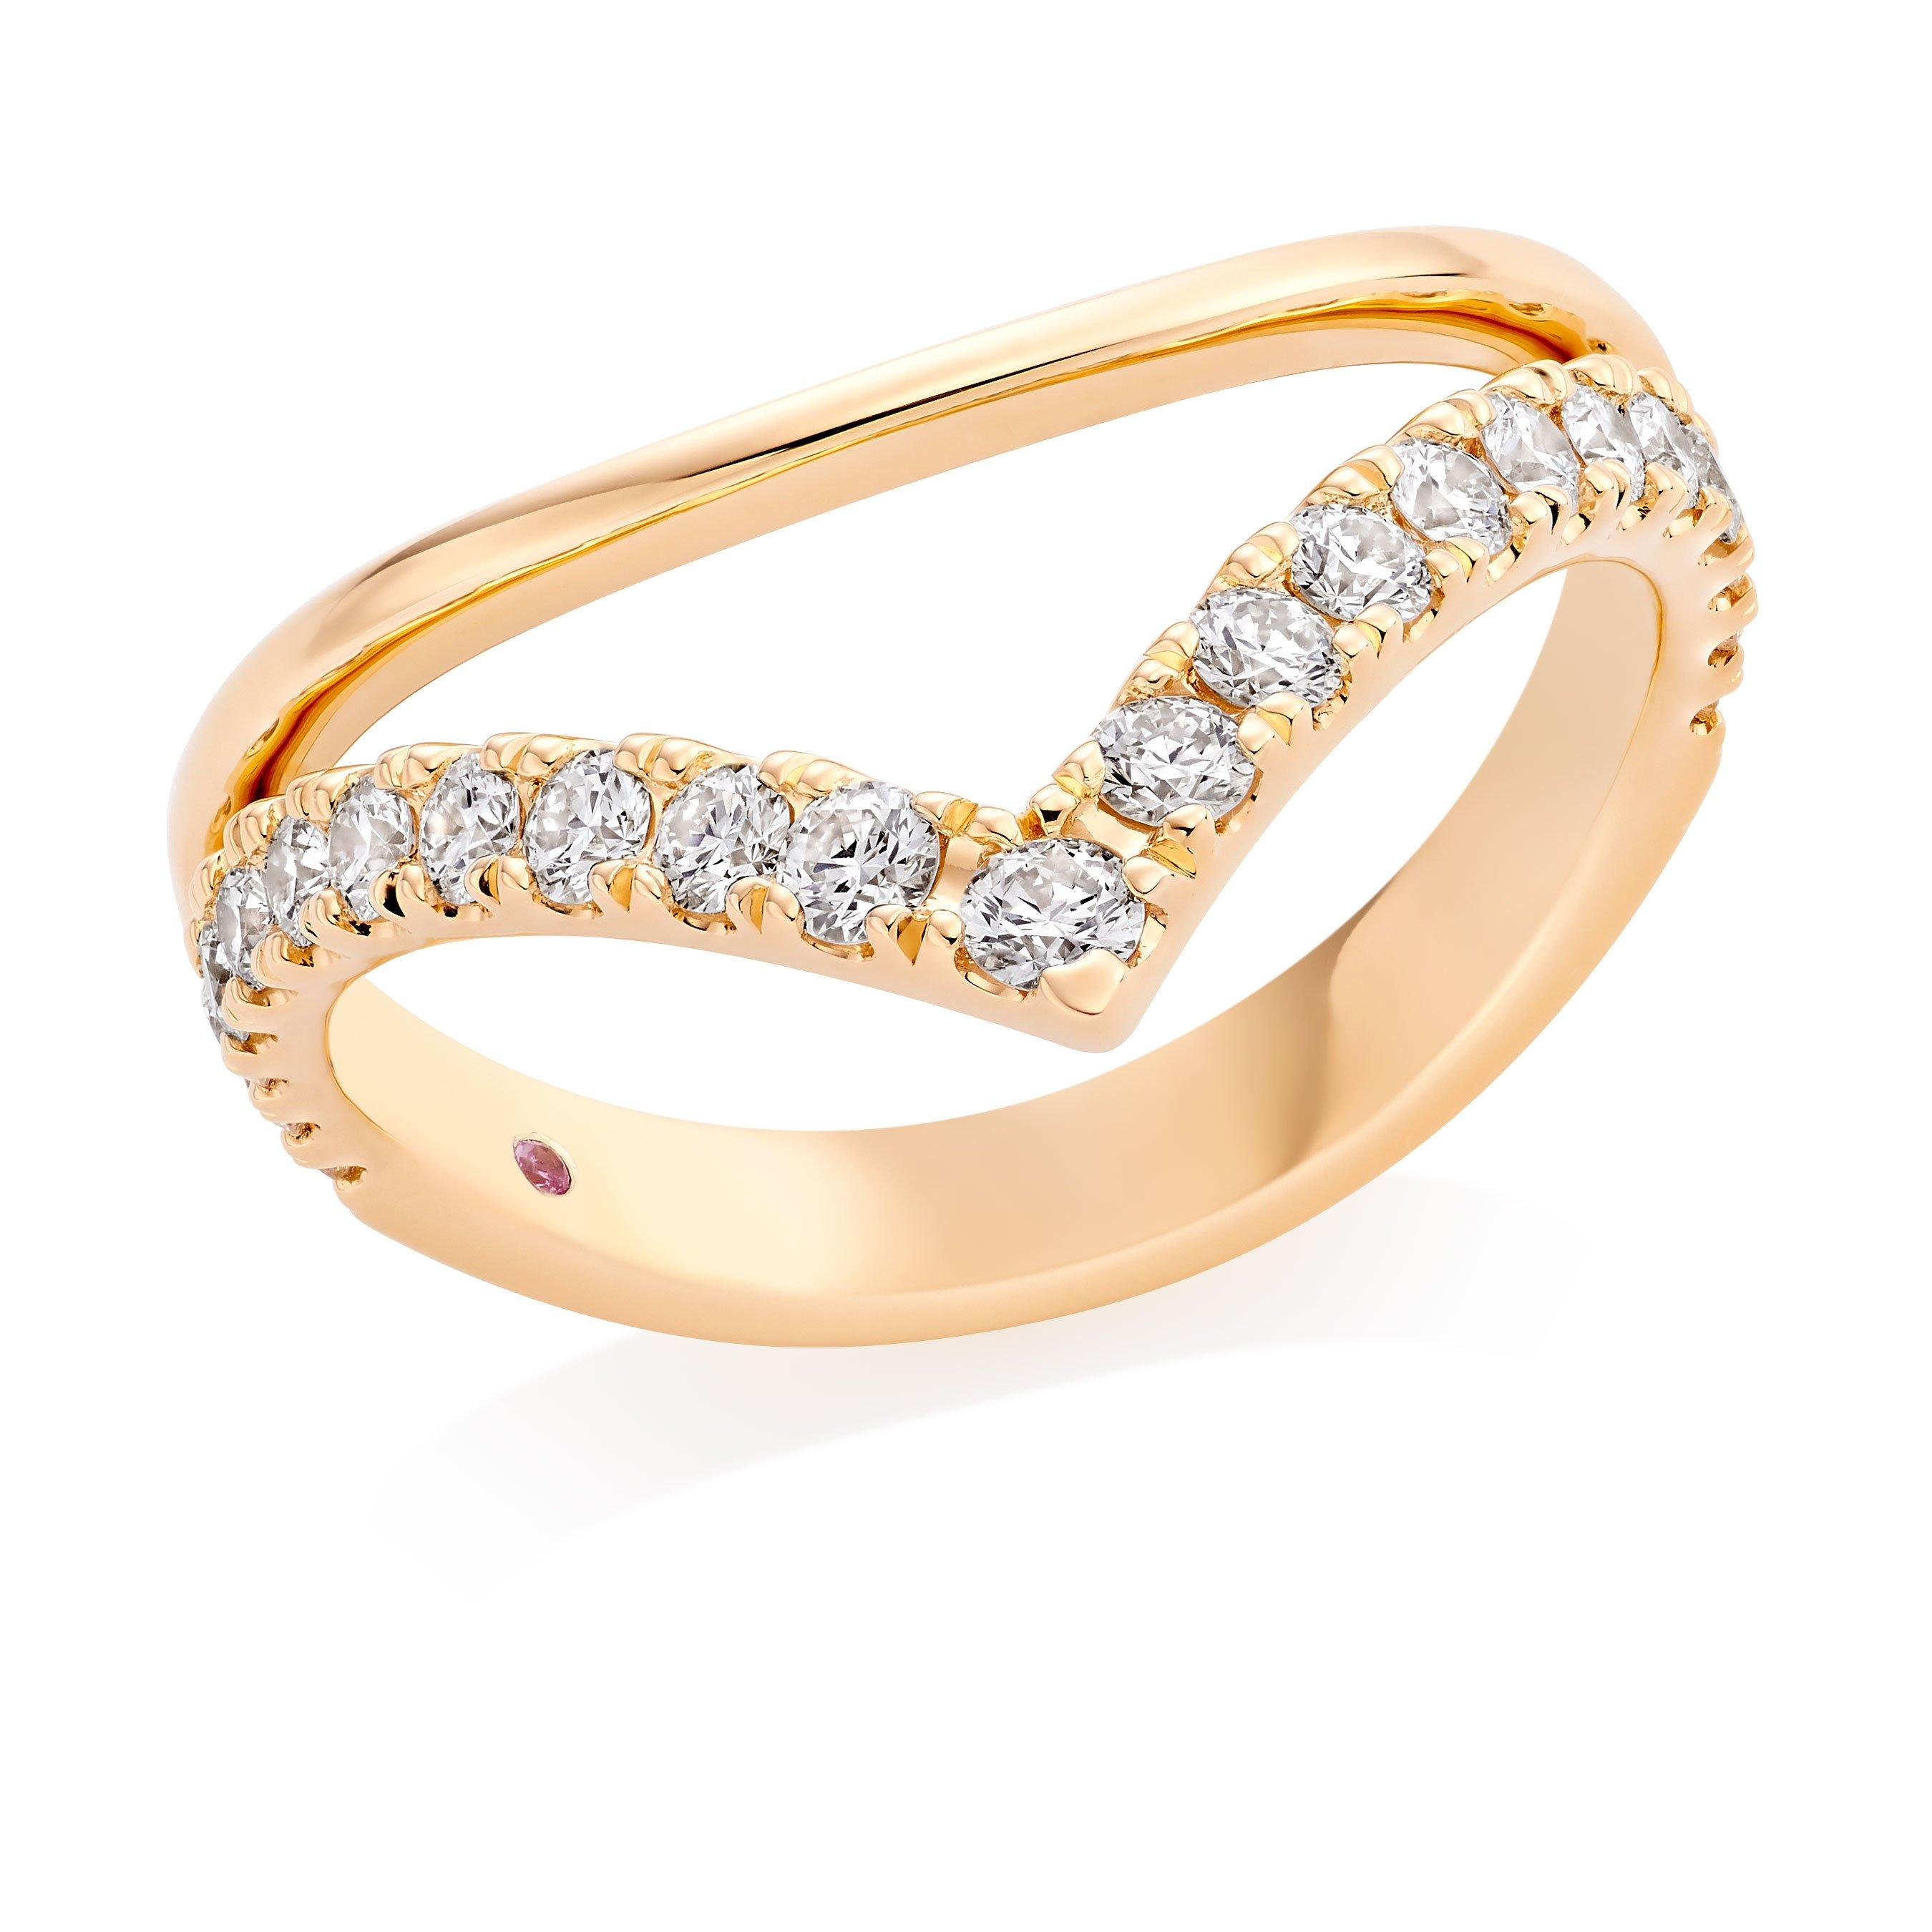 Hearts On Fire Hayley Paige Harley 18ct Gold Diamond Shaped Ring